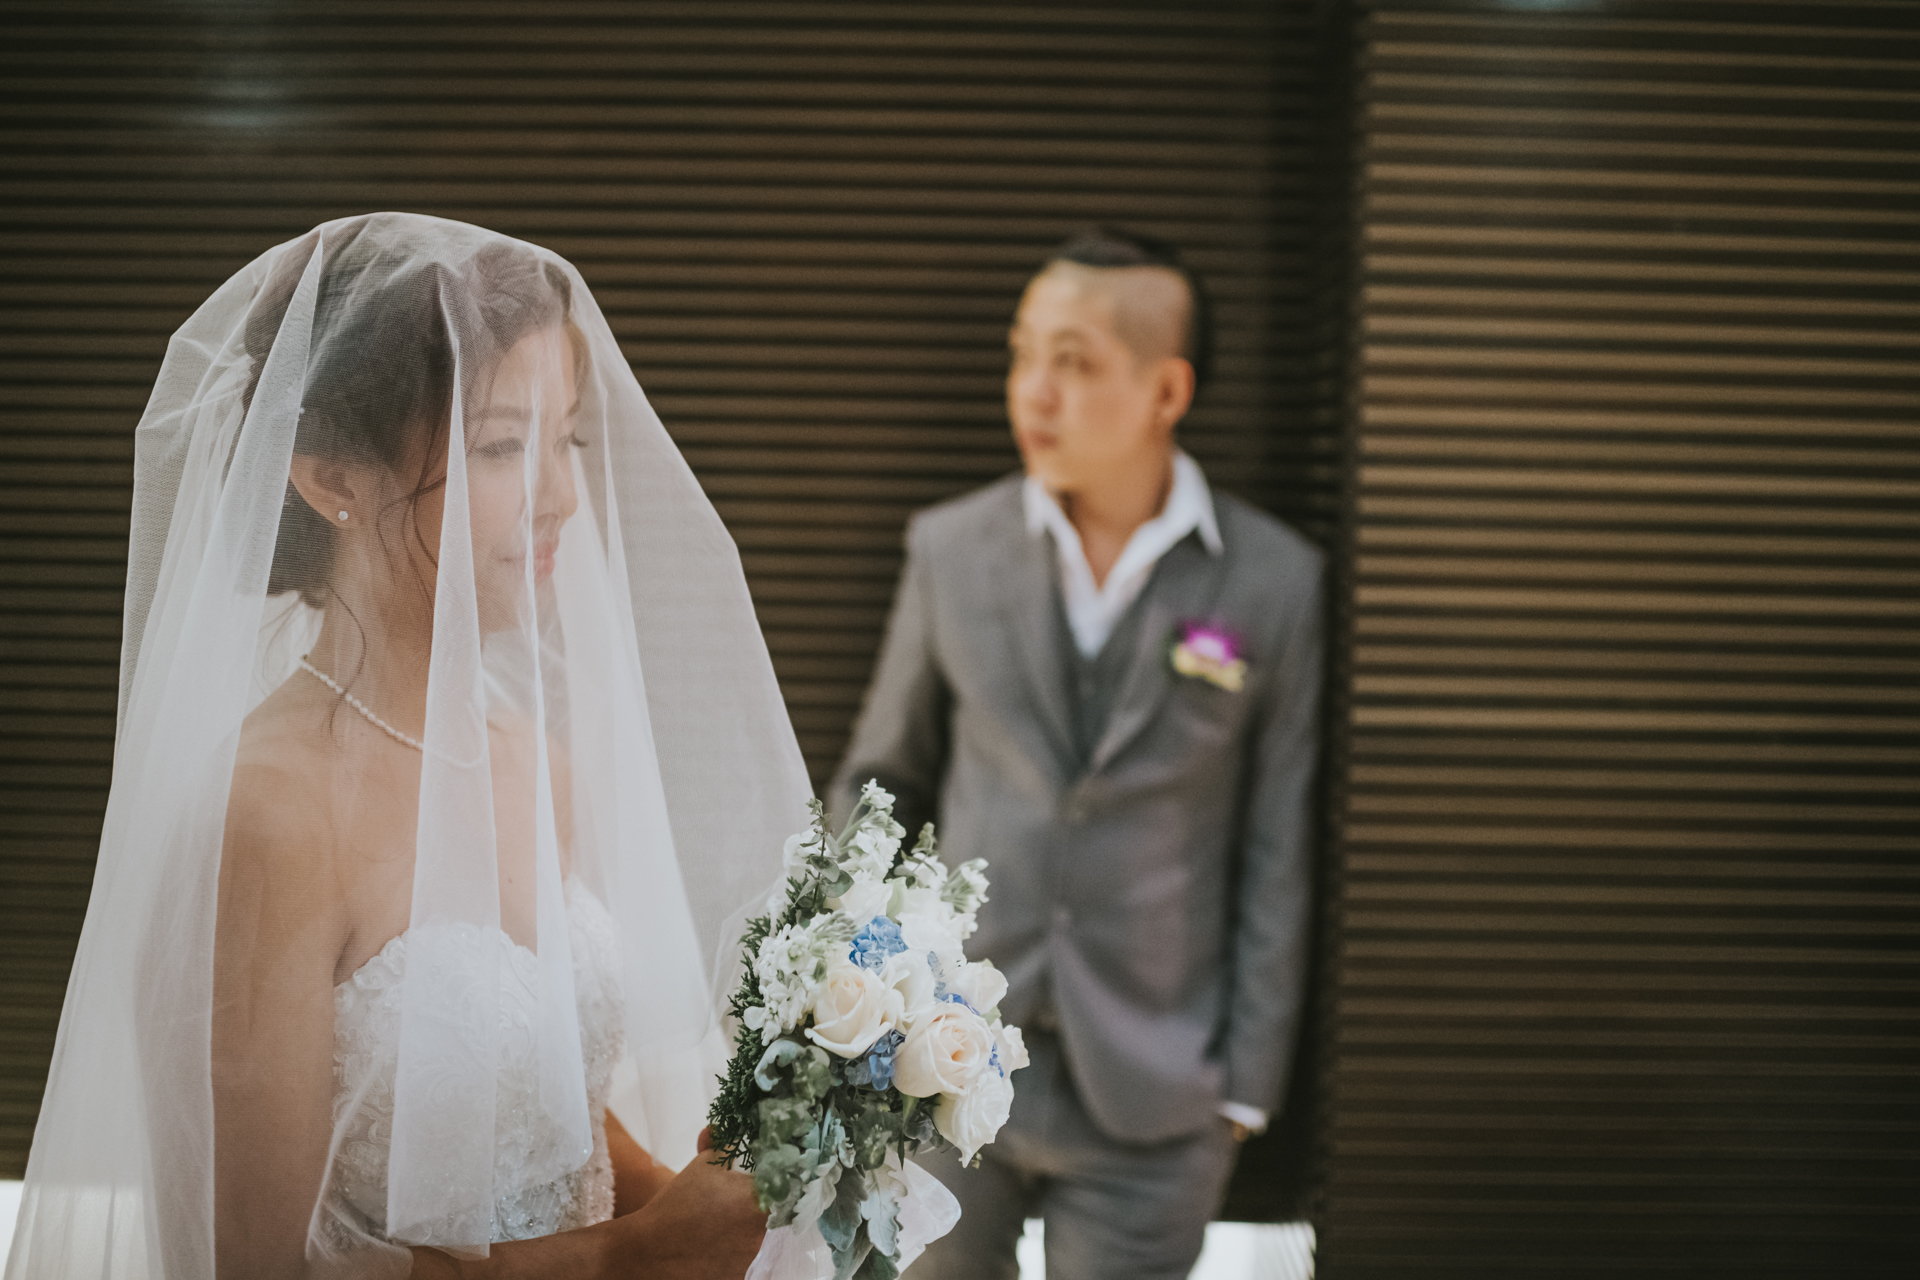 WeddingDay_Alvin&Esther-0113.jpg